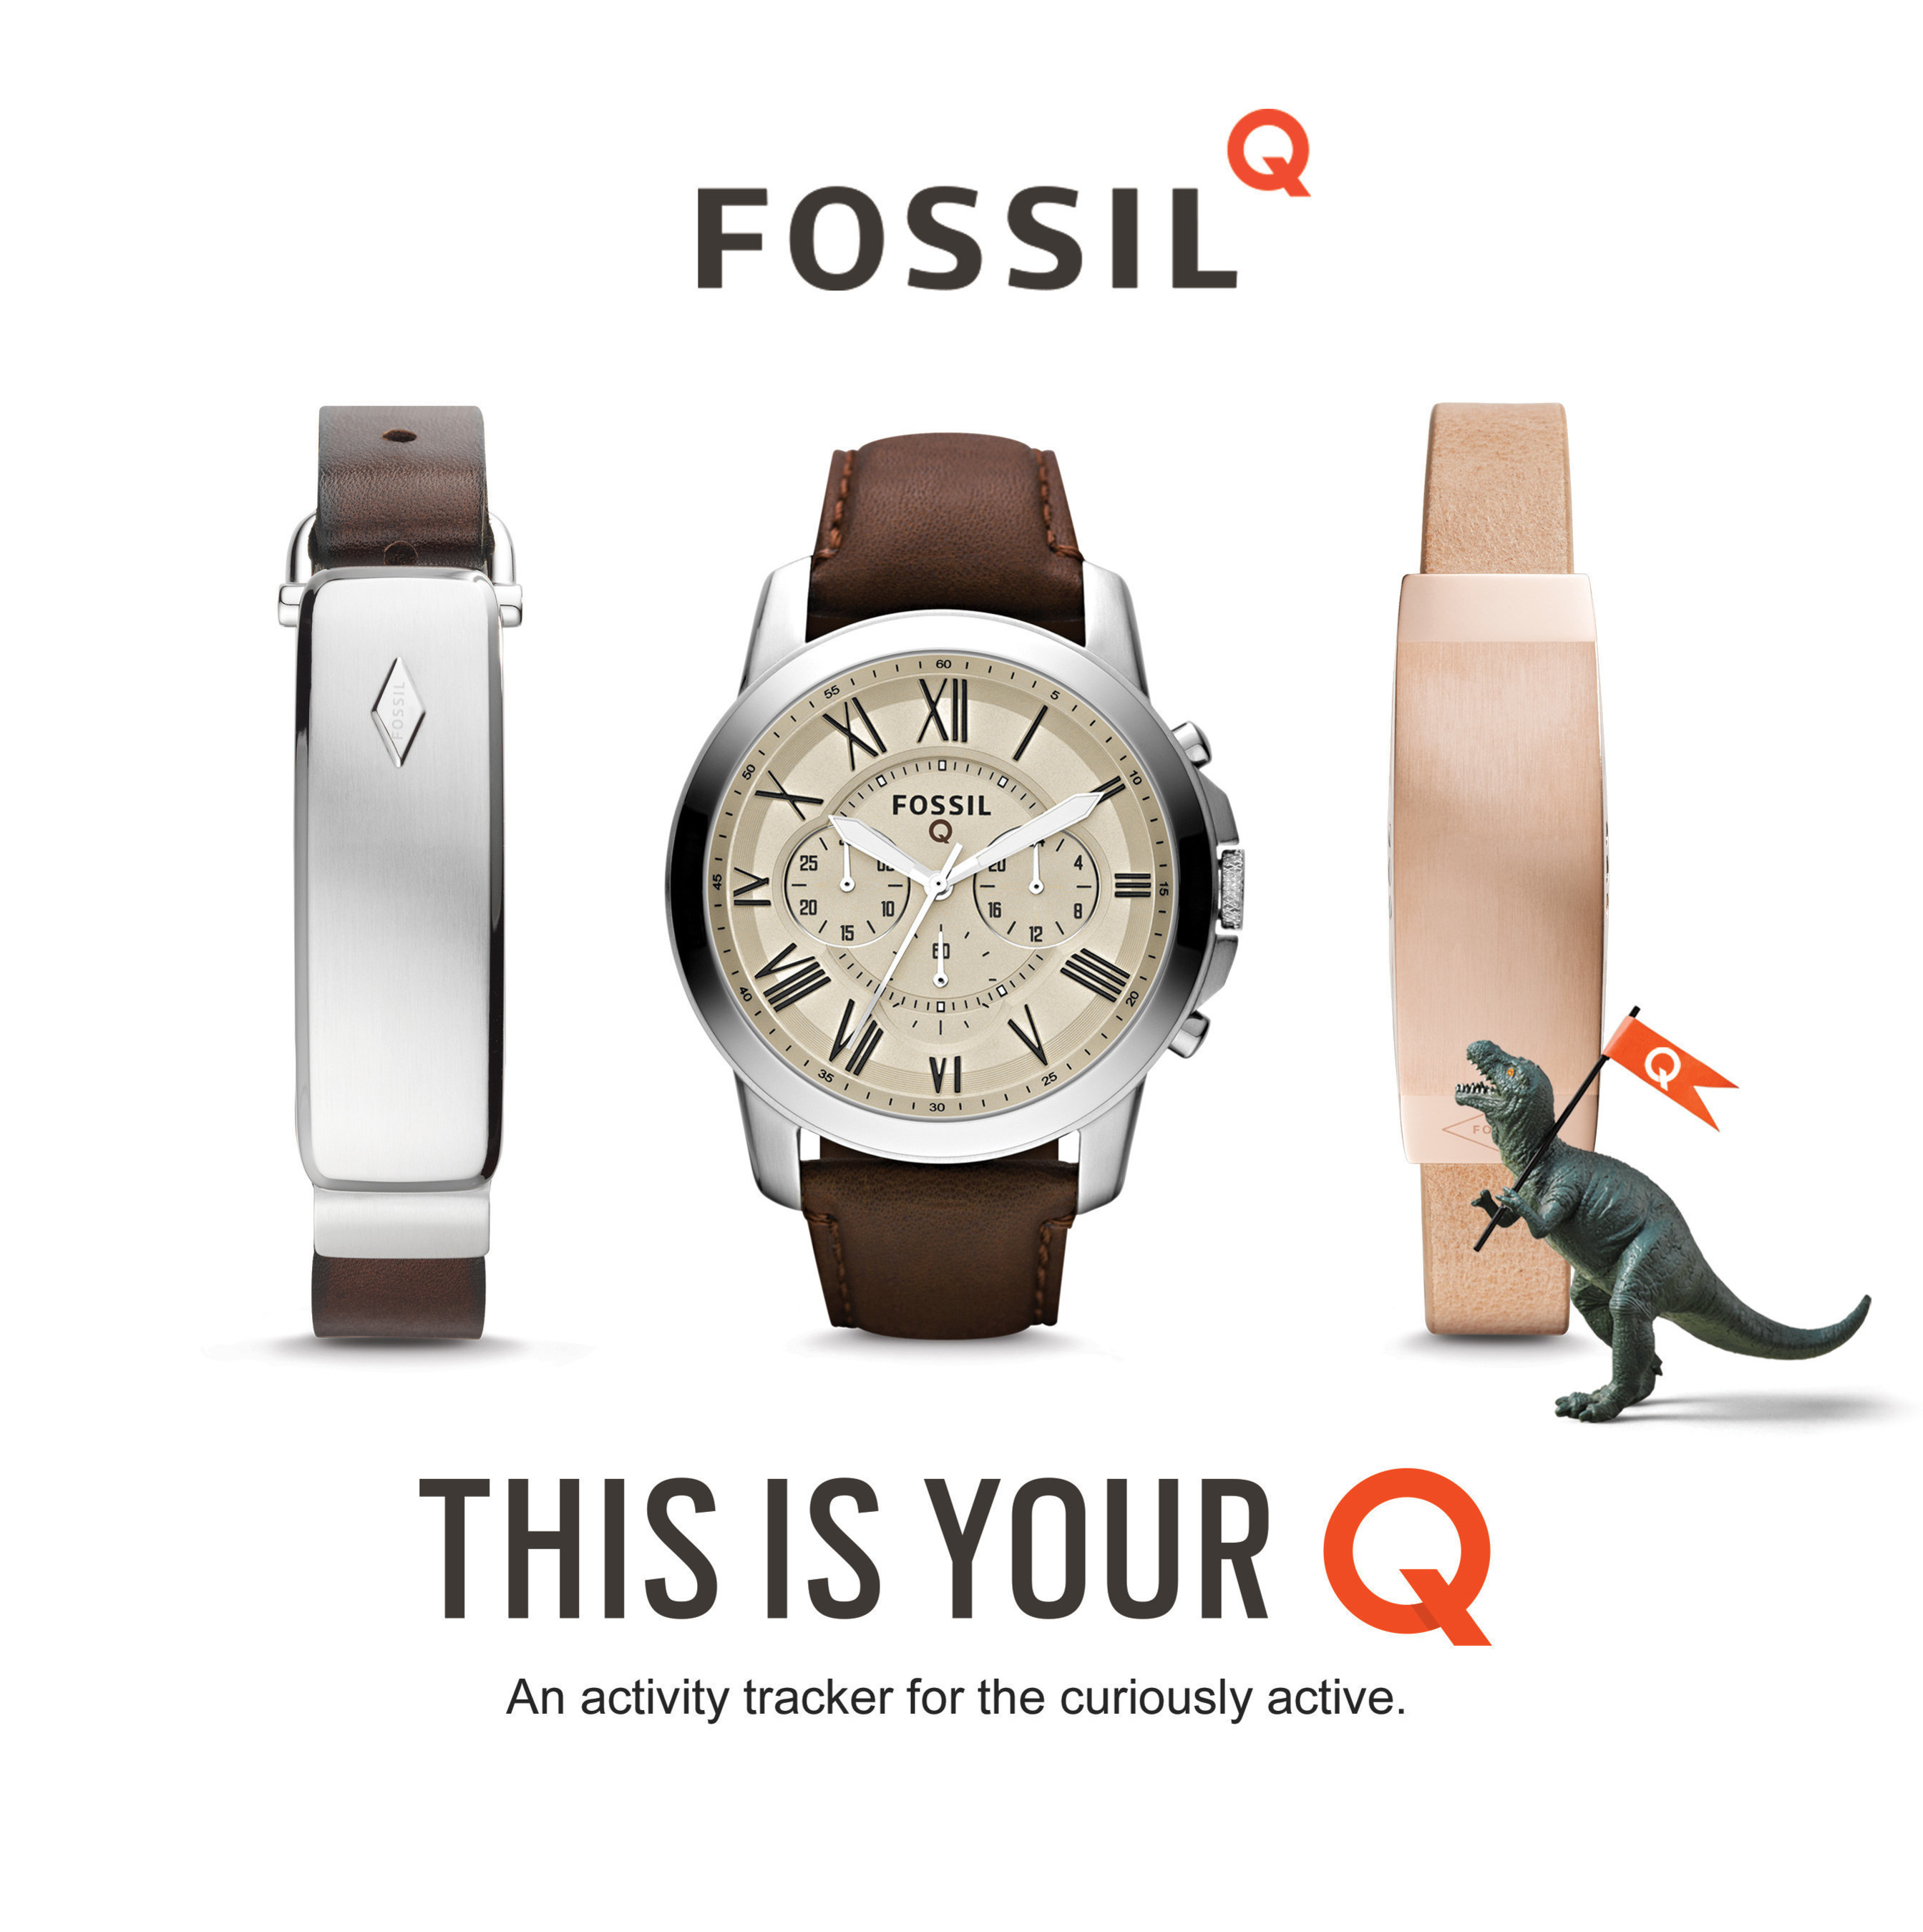 Introducing: Fossil Q. The connected accessory that fits your style, tracks your steps, and keeps you curious. With two types of connected watches (both display and non-display) and two styles of connected bracelets (one for men and one for women), there's something for everyone. Fashion meets function in stores October 25.